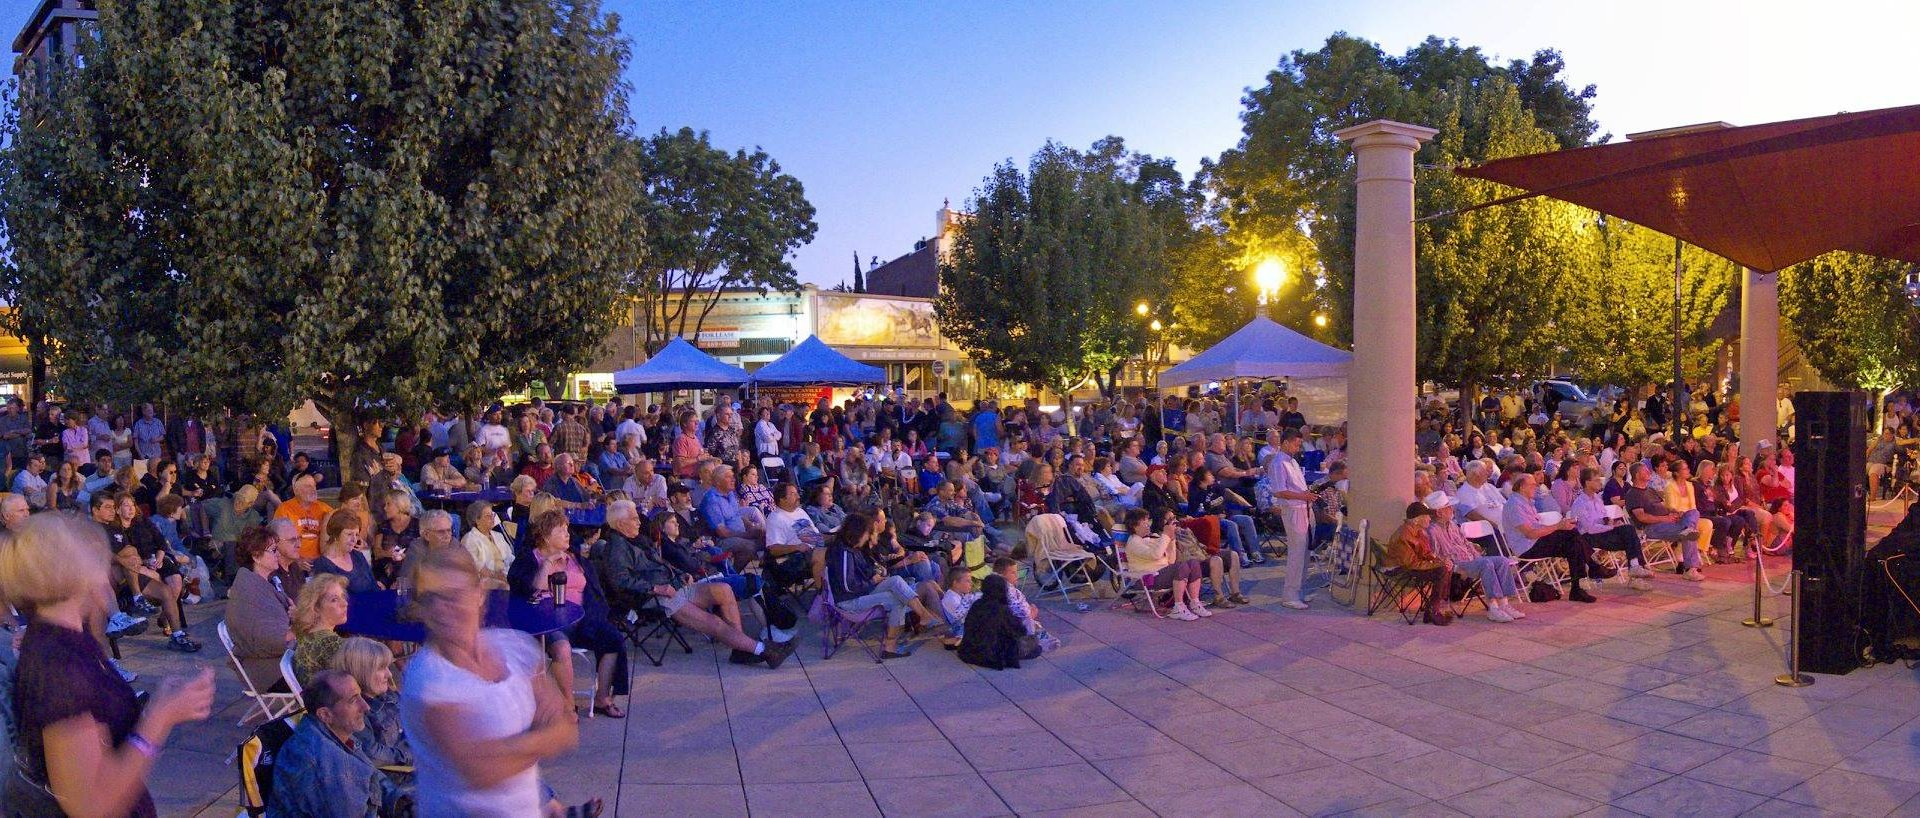 Enjoy Live Music in the Town Square